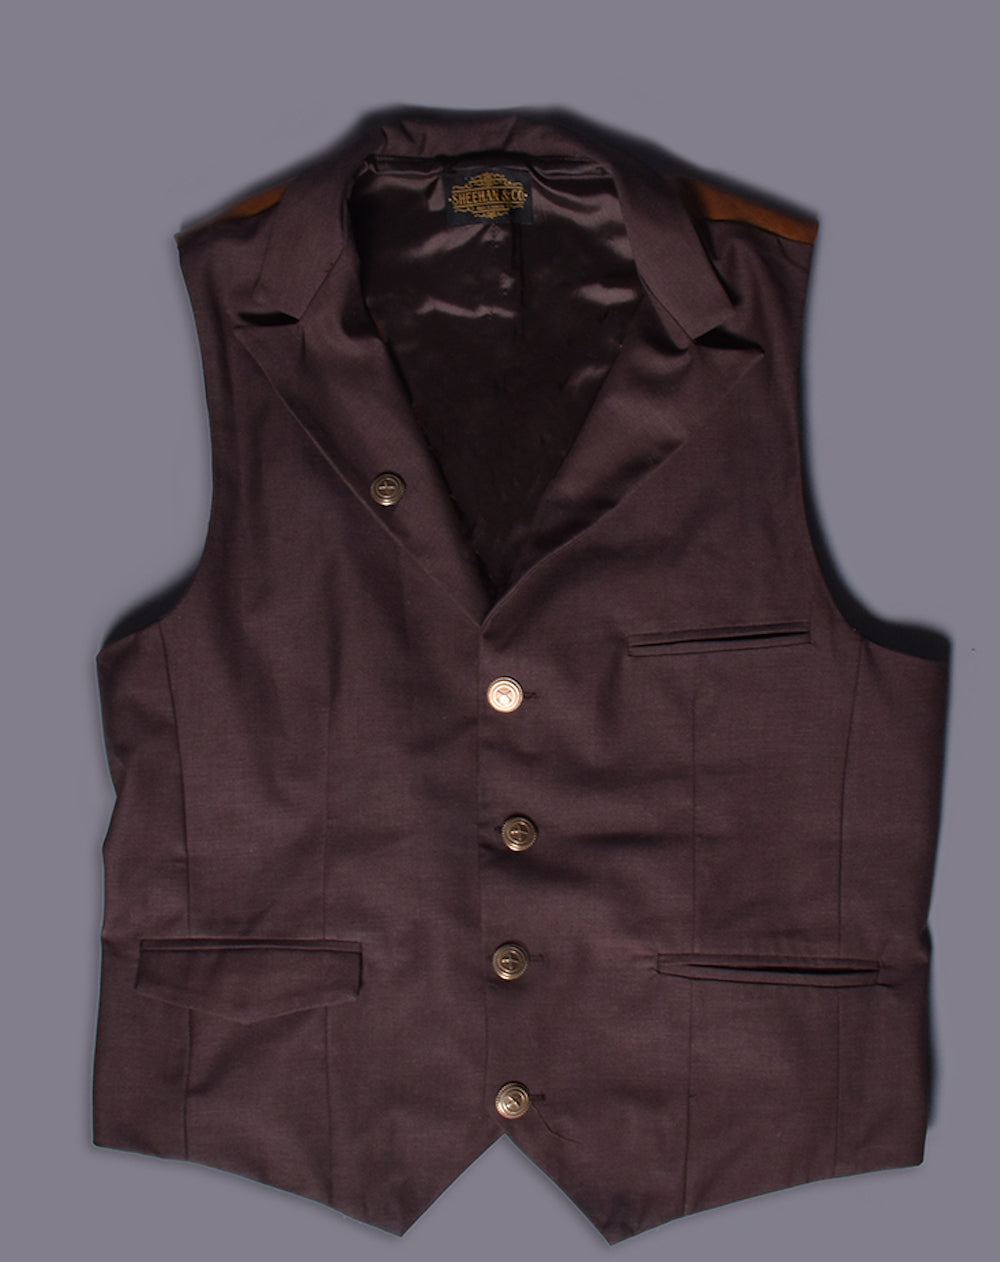 LapeL Vest Waistcoat Made to Measure by Sheehan